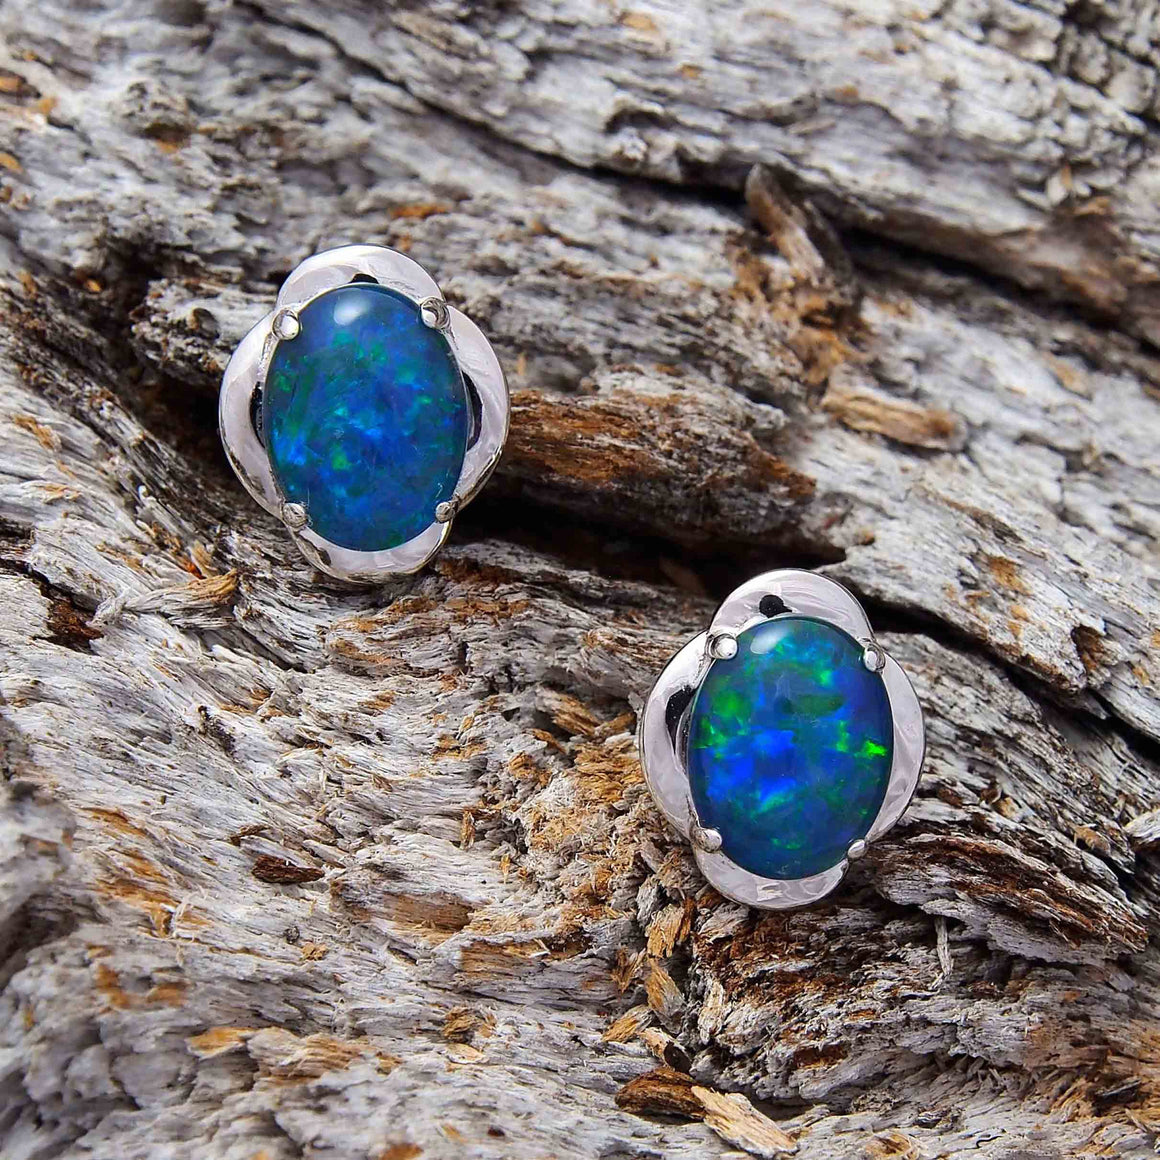 Sterling silver scallop design stud earrings claw set with blue and green oval triplet opals